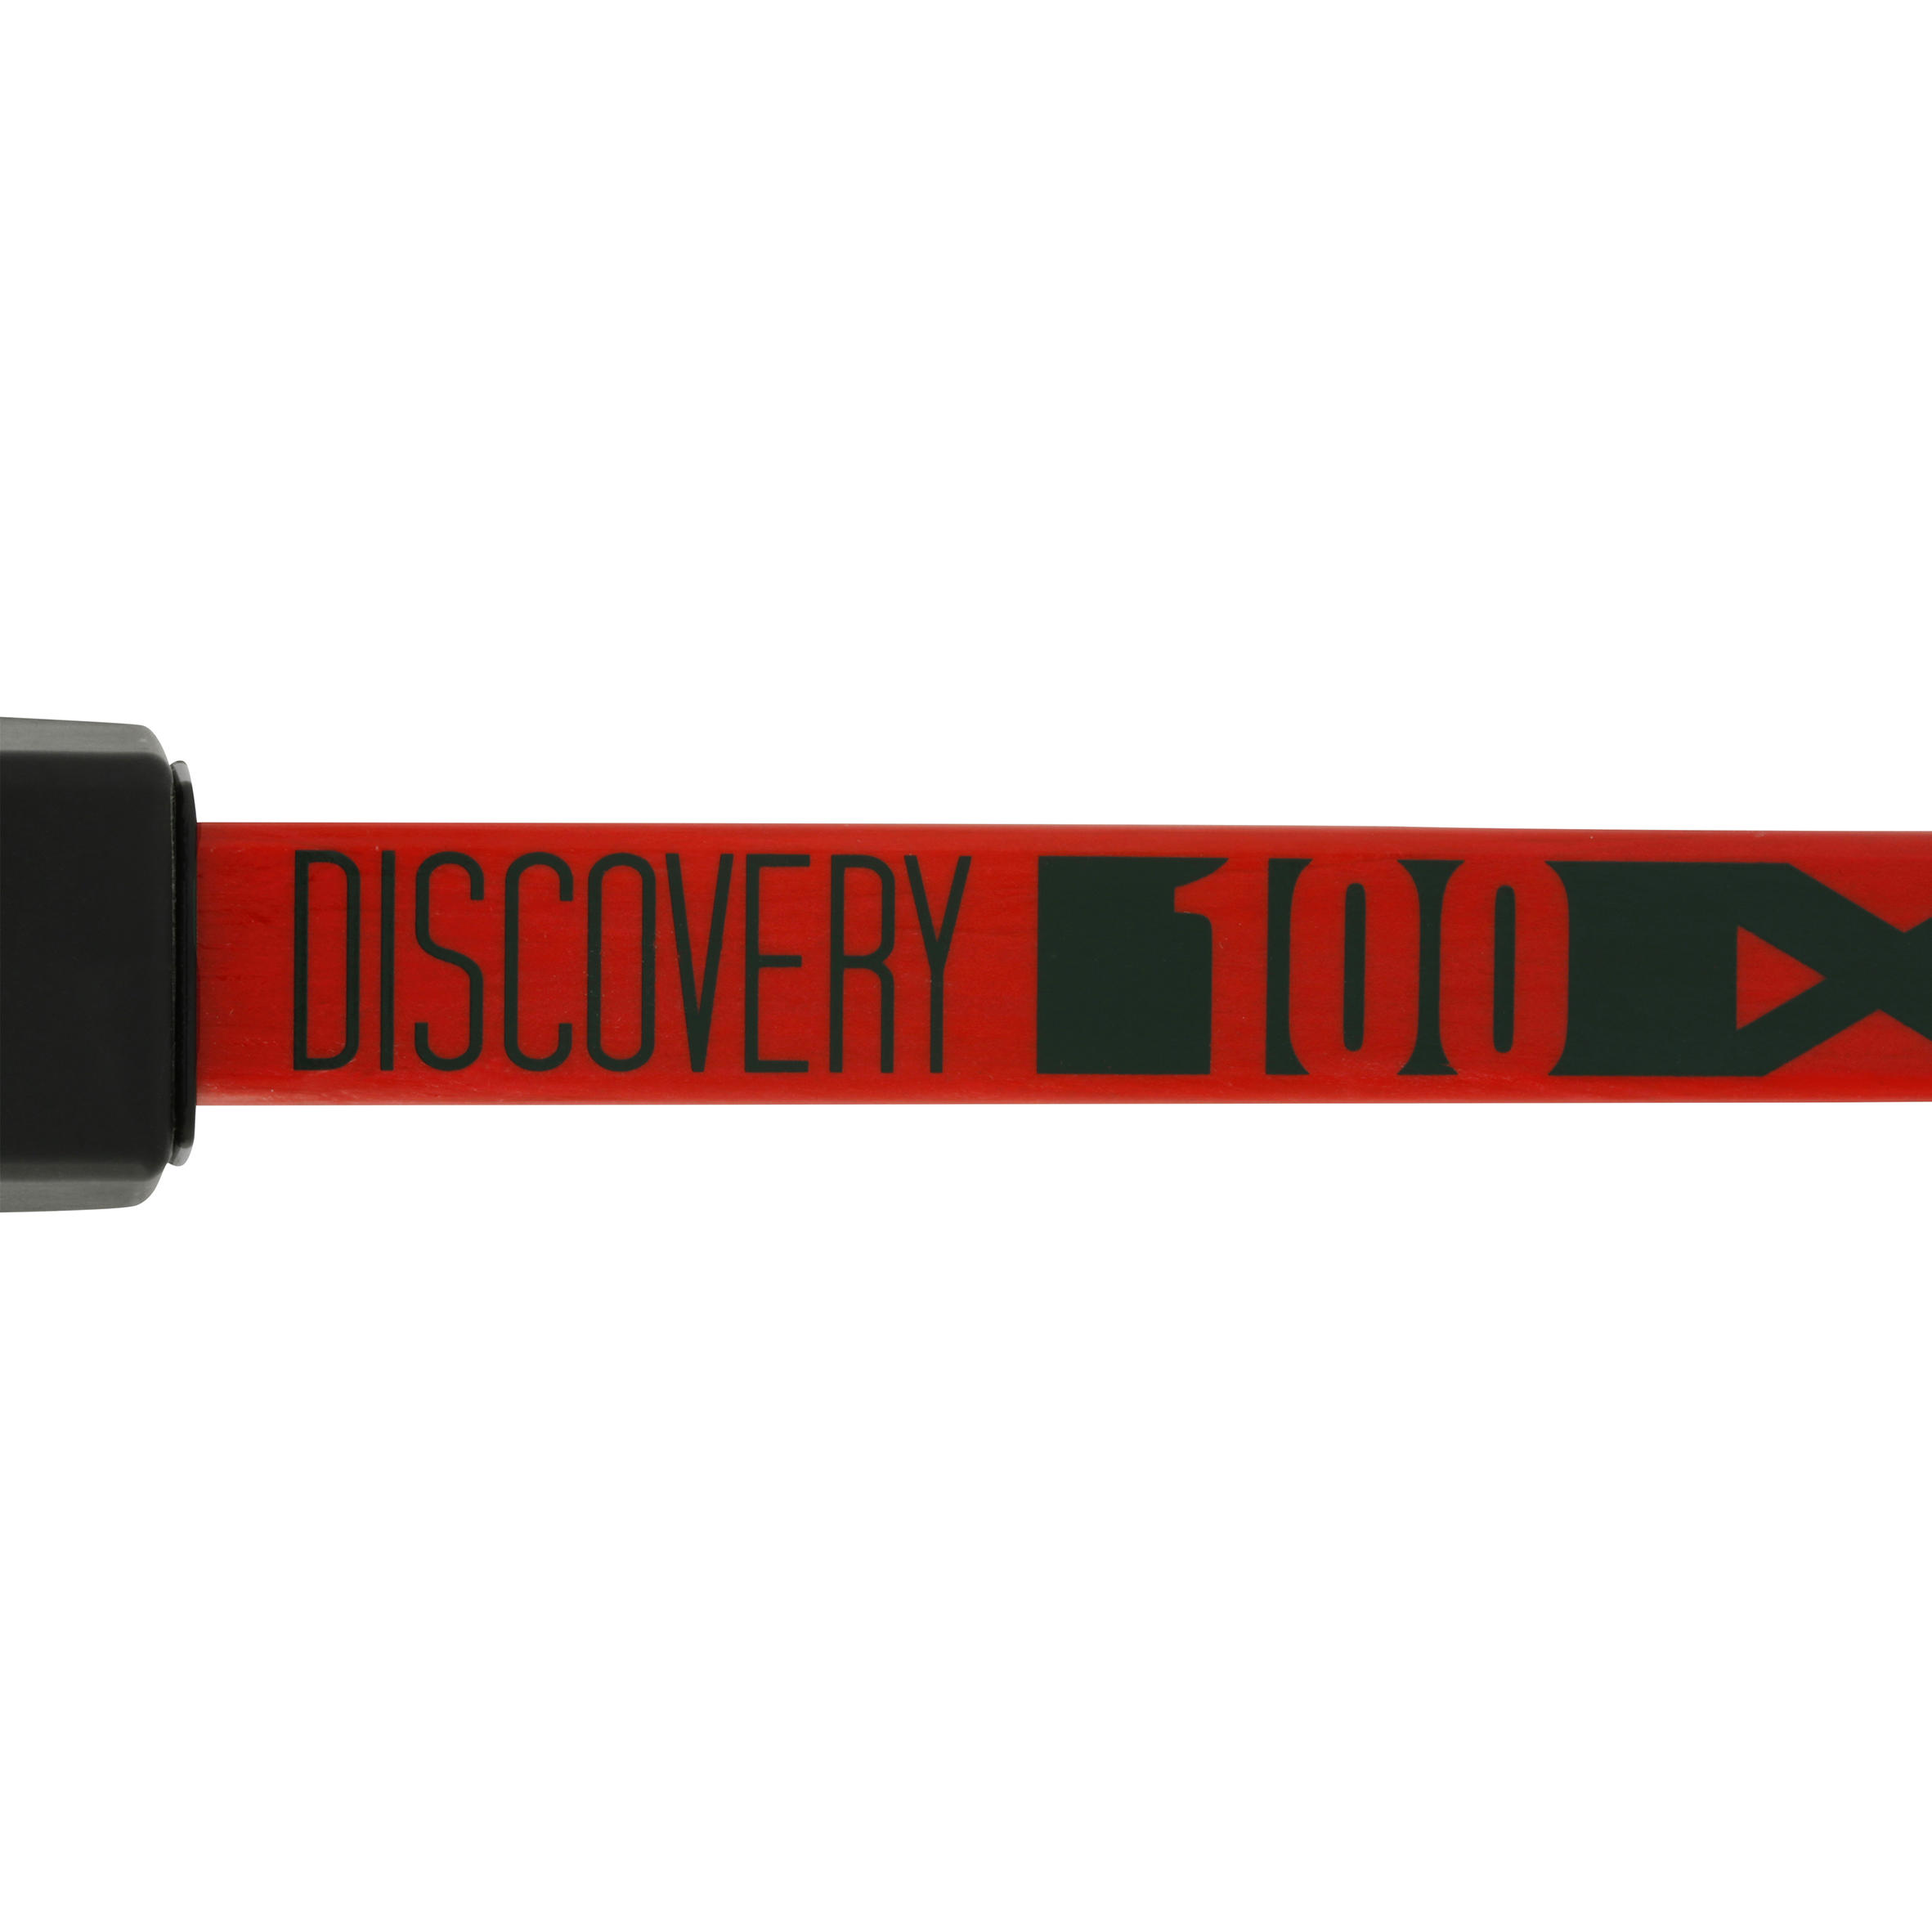 Discovery 100 Archery Bow - Red